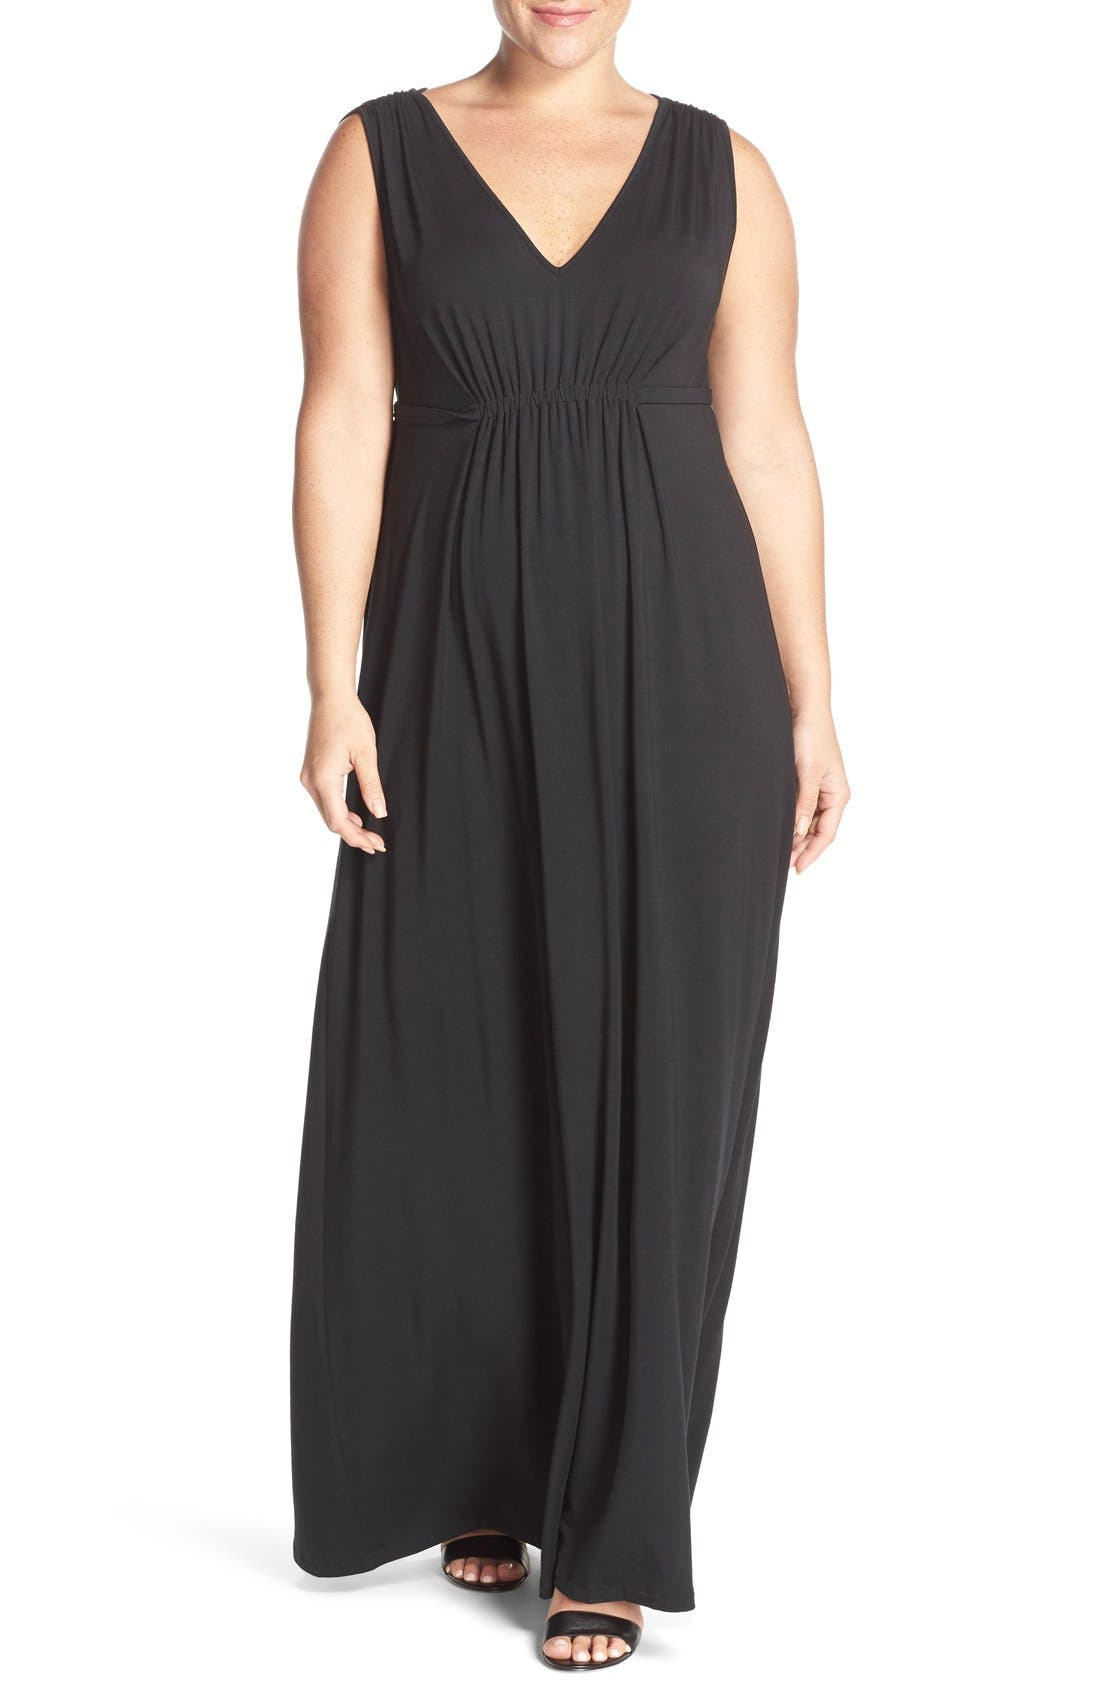 TART Grecia Sleeveless Jersey Maxi Dress